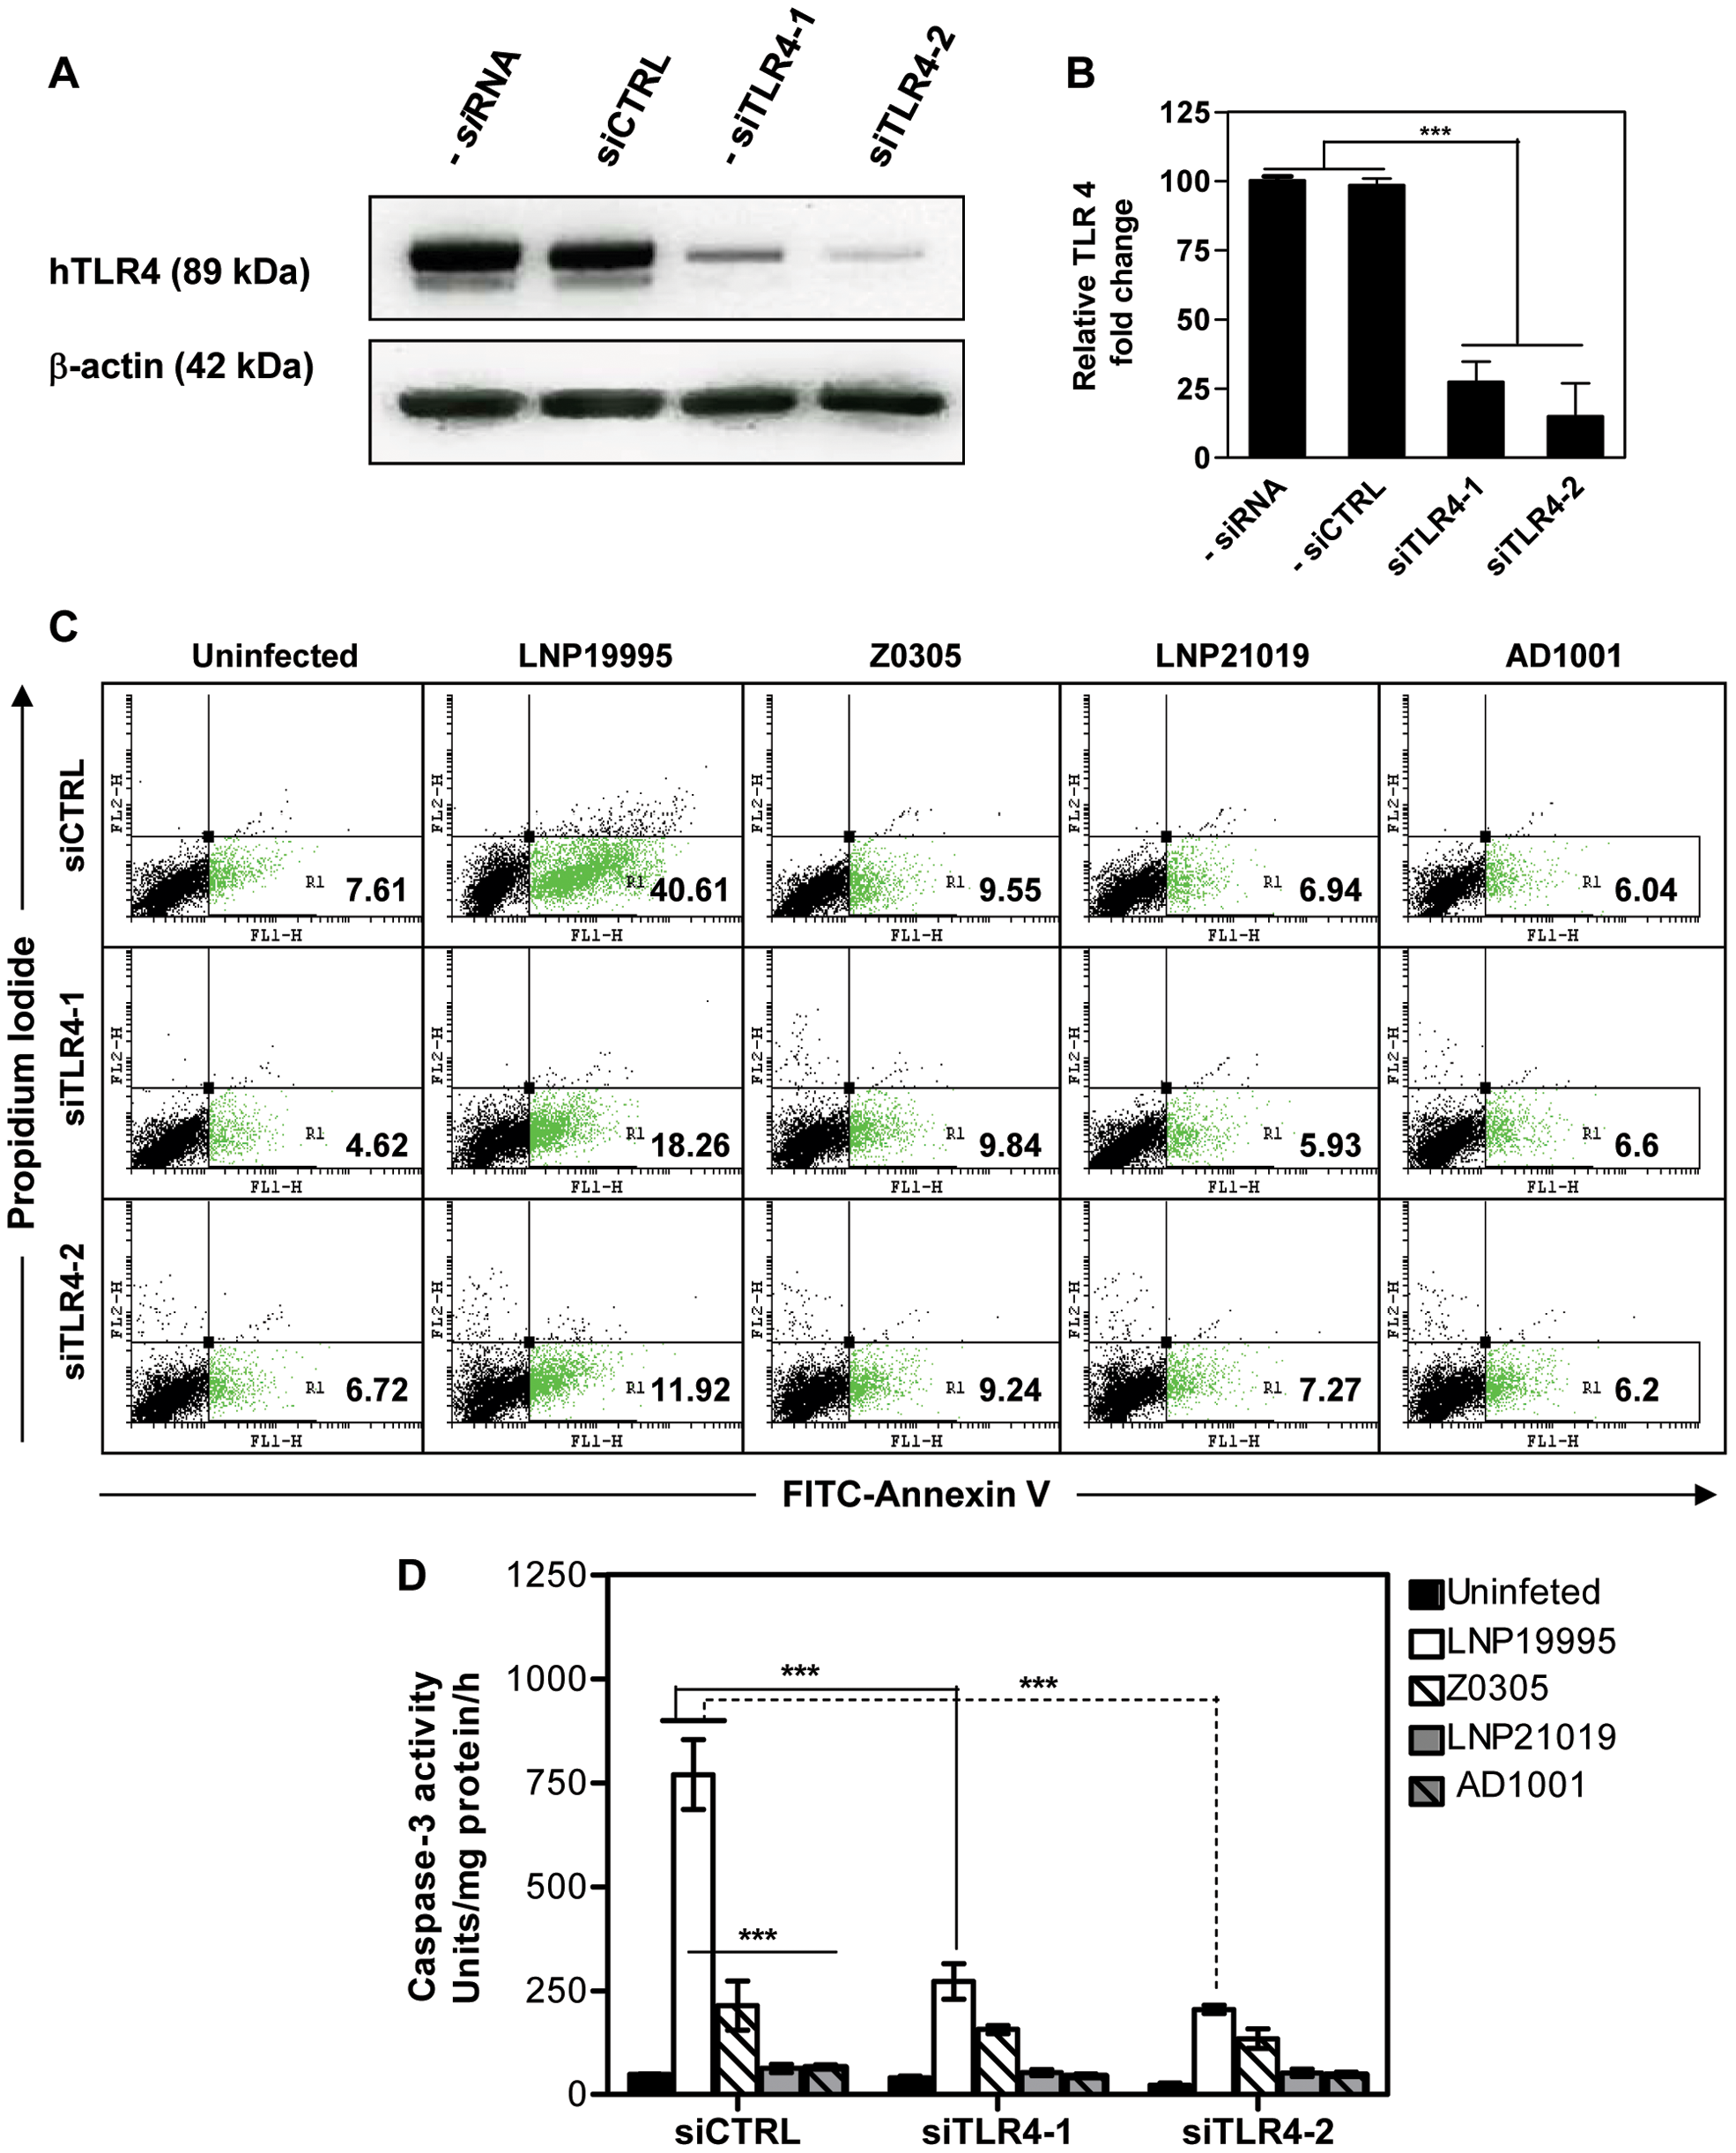 TLR4 depletion improves survival of cells infected with the ST-11 isolates.